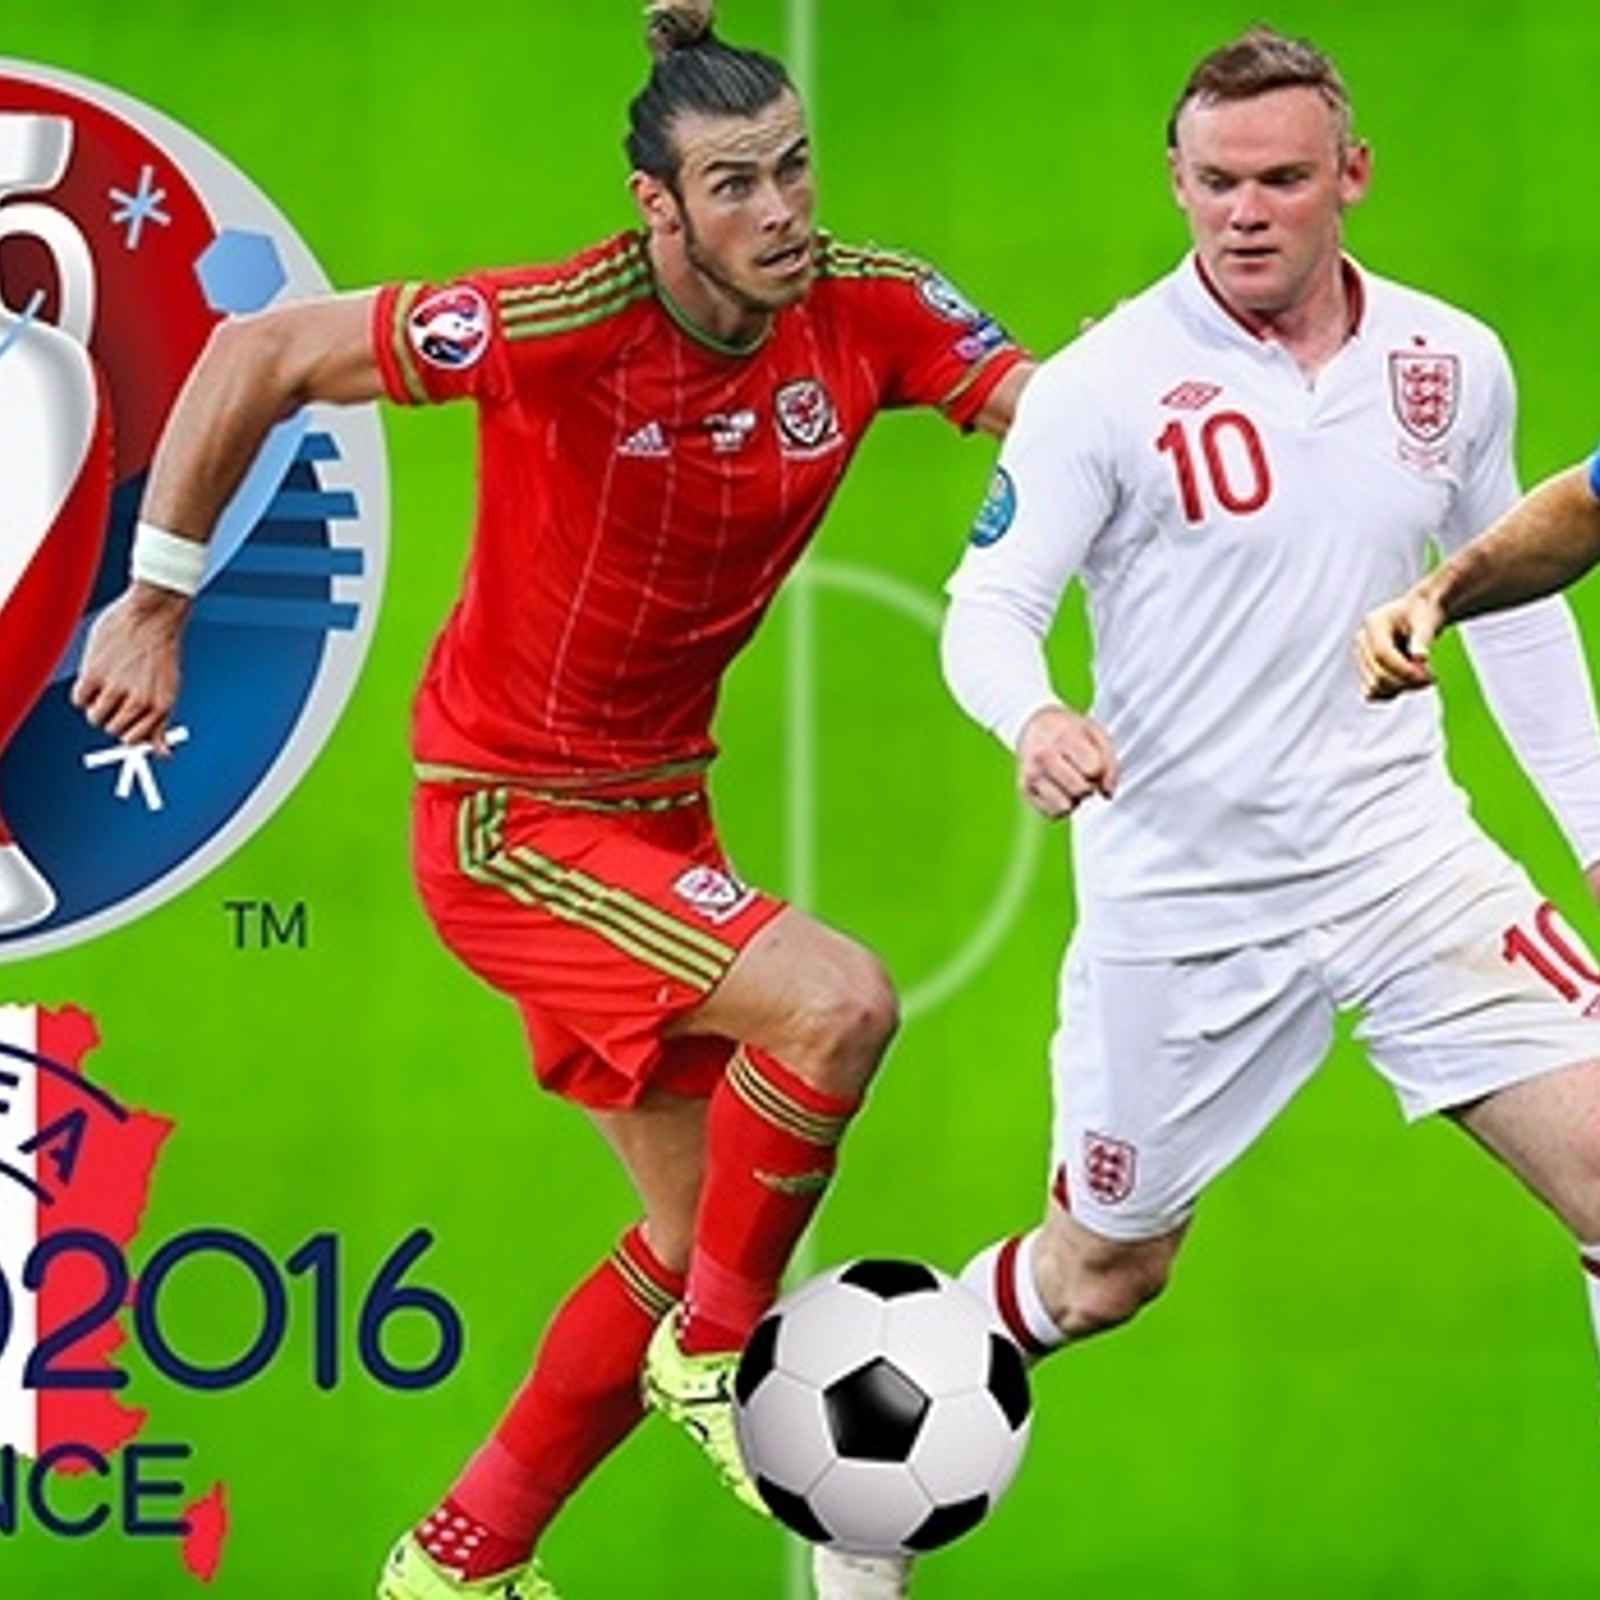 Watch the England and Wales opening matches at Ashton Athletic